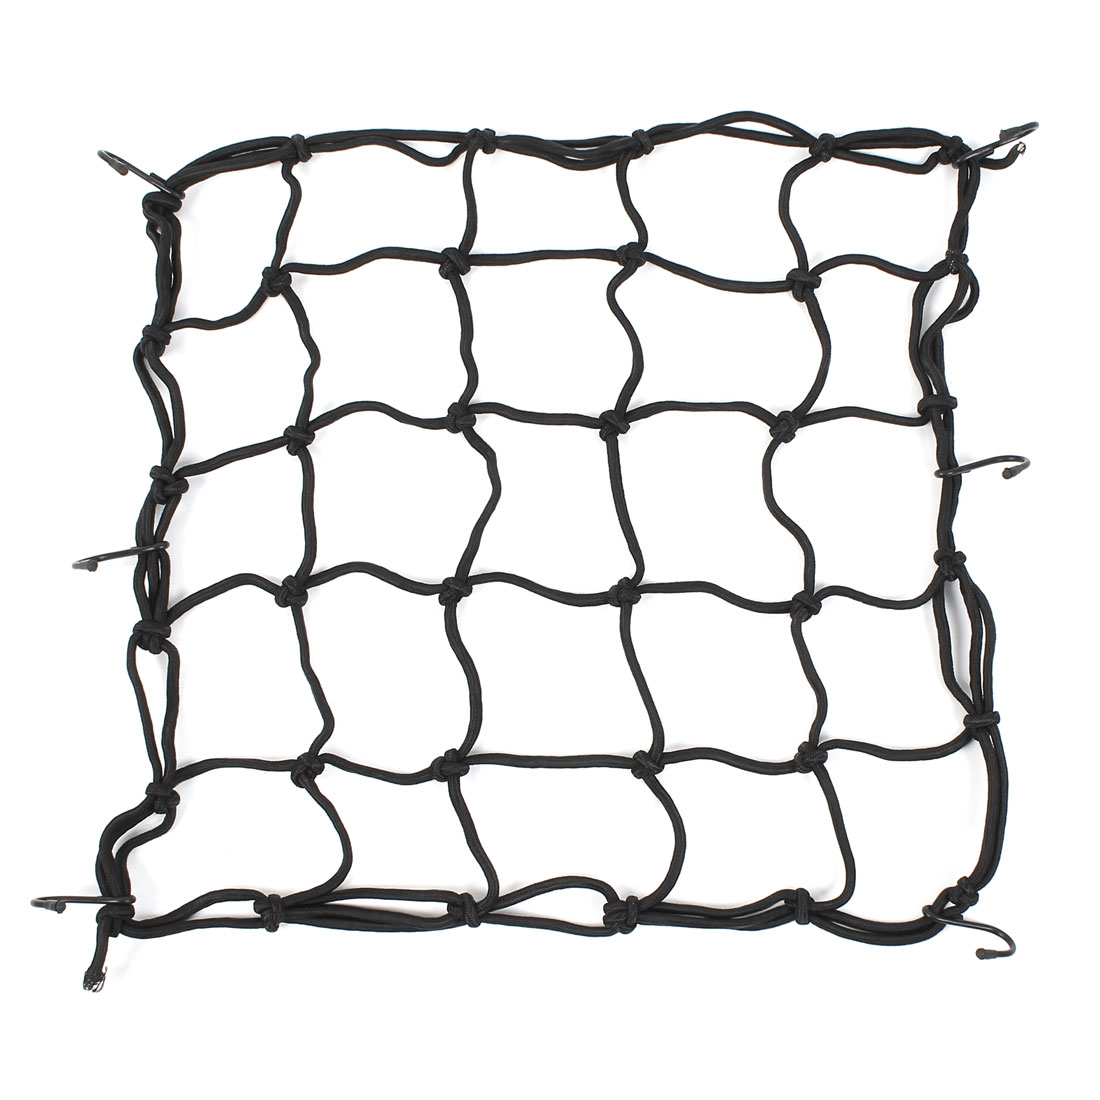 Black 6 Hooks Rear Helmet Elastic Cargo Nets Mesh 40x40cm for Motorcycle ATV